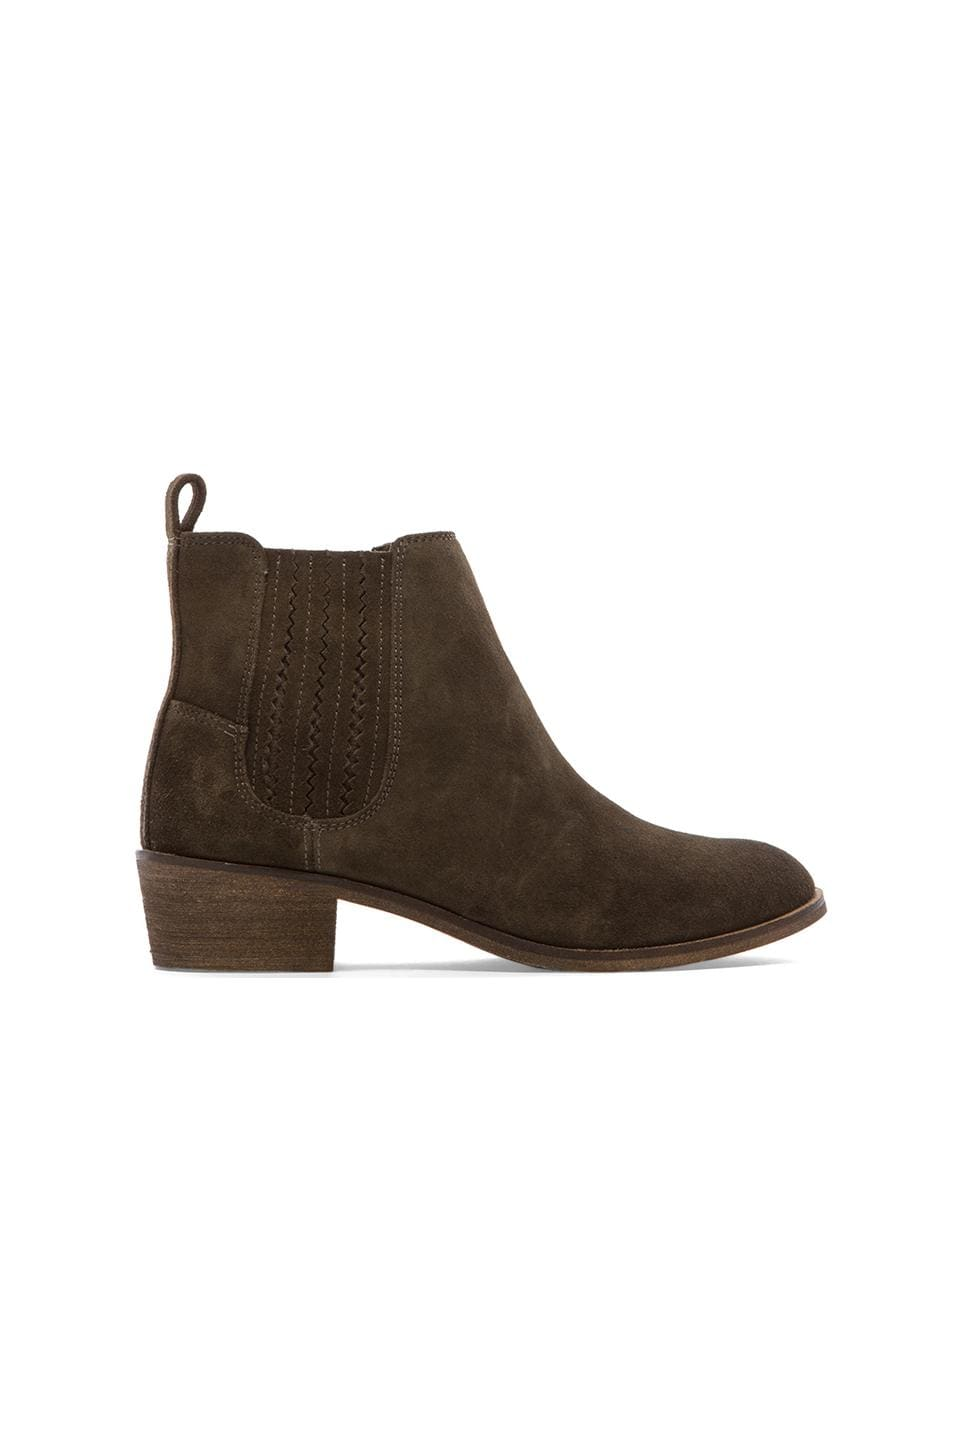 Splendid Harrison Booties in Smoke